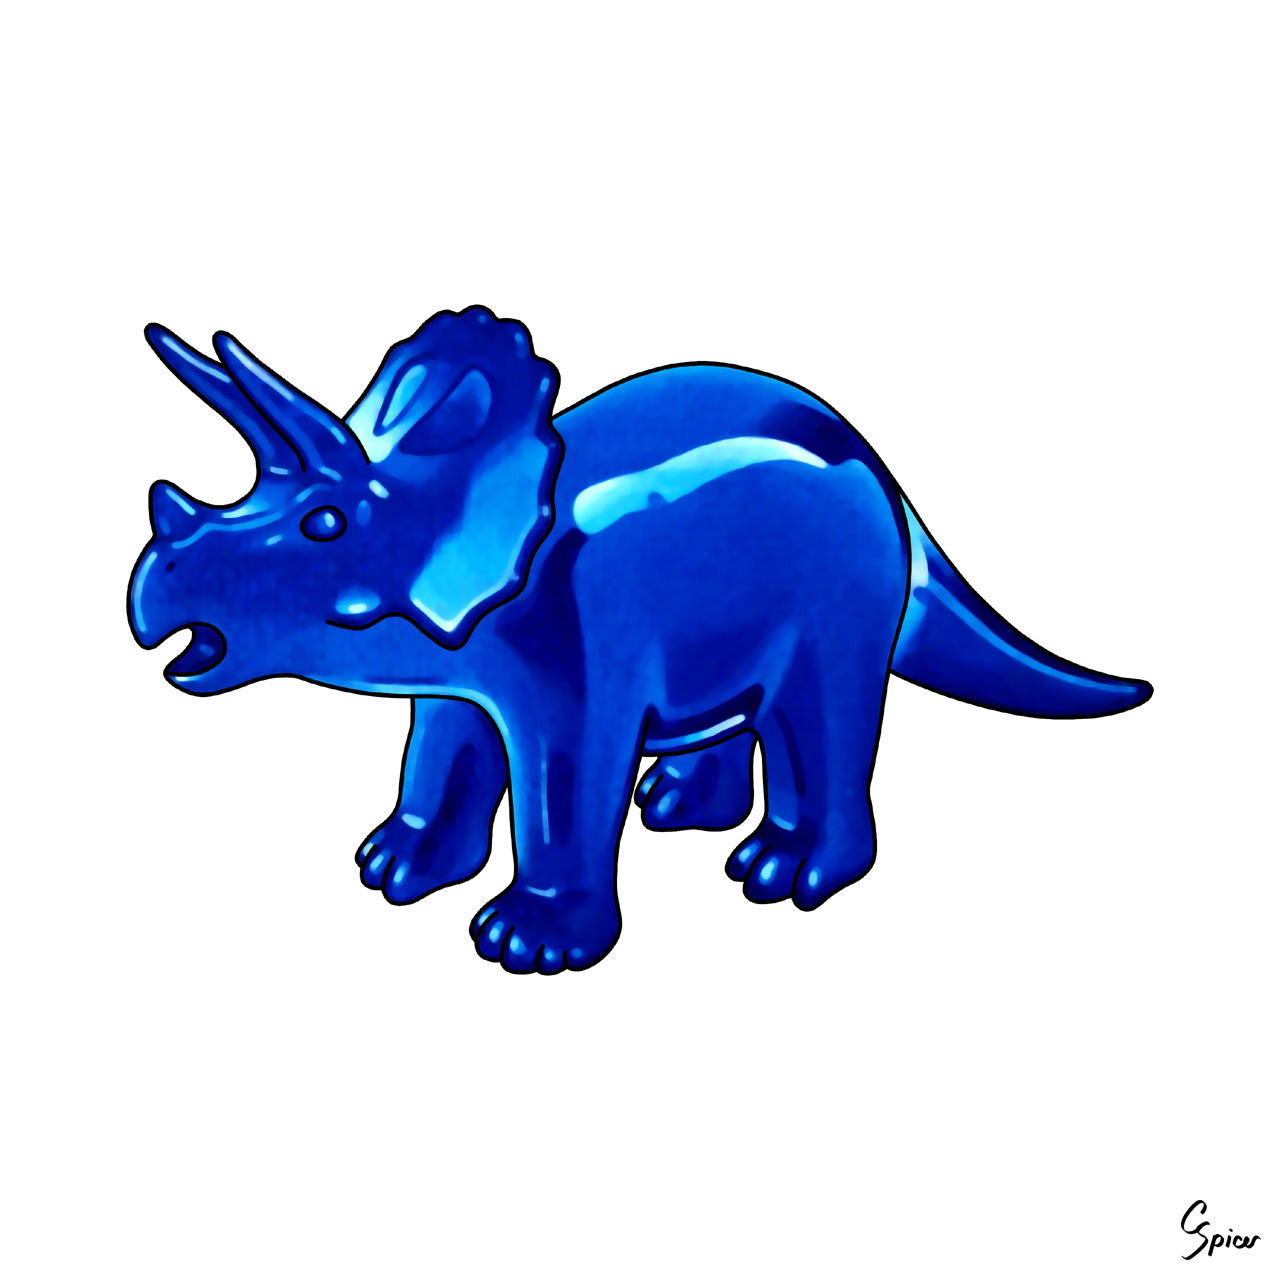 Triceratops - Illustration by Christopher Spicer